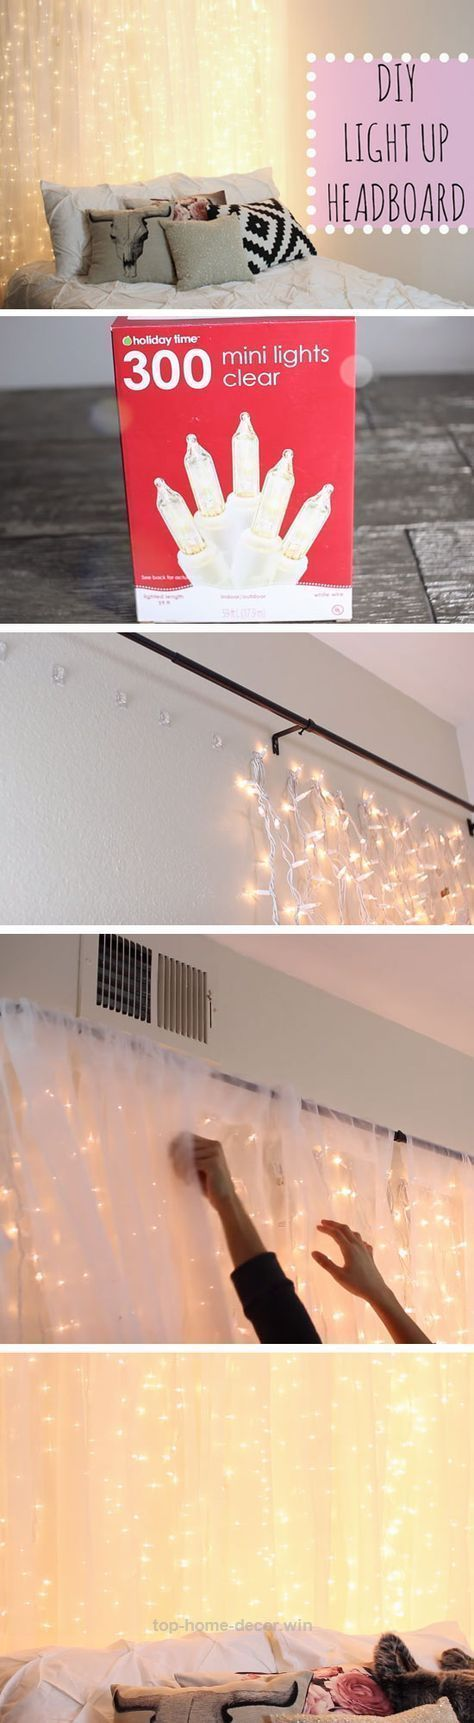 Neat 18 DIY Tumblr Dorm Room Ideas for Girls The post 18 DIY Tumblr Dorm Room Ideas for Girls… appeared first on Home Decor .